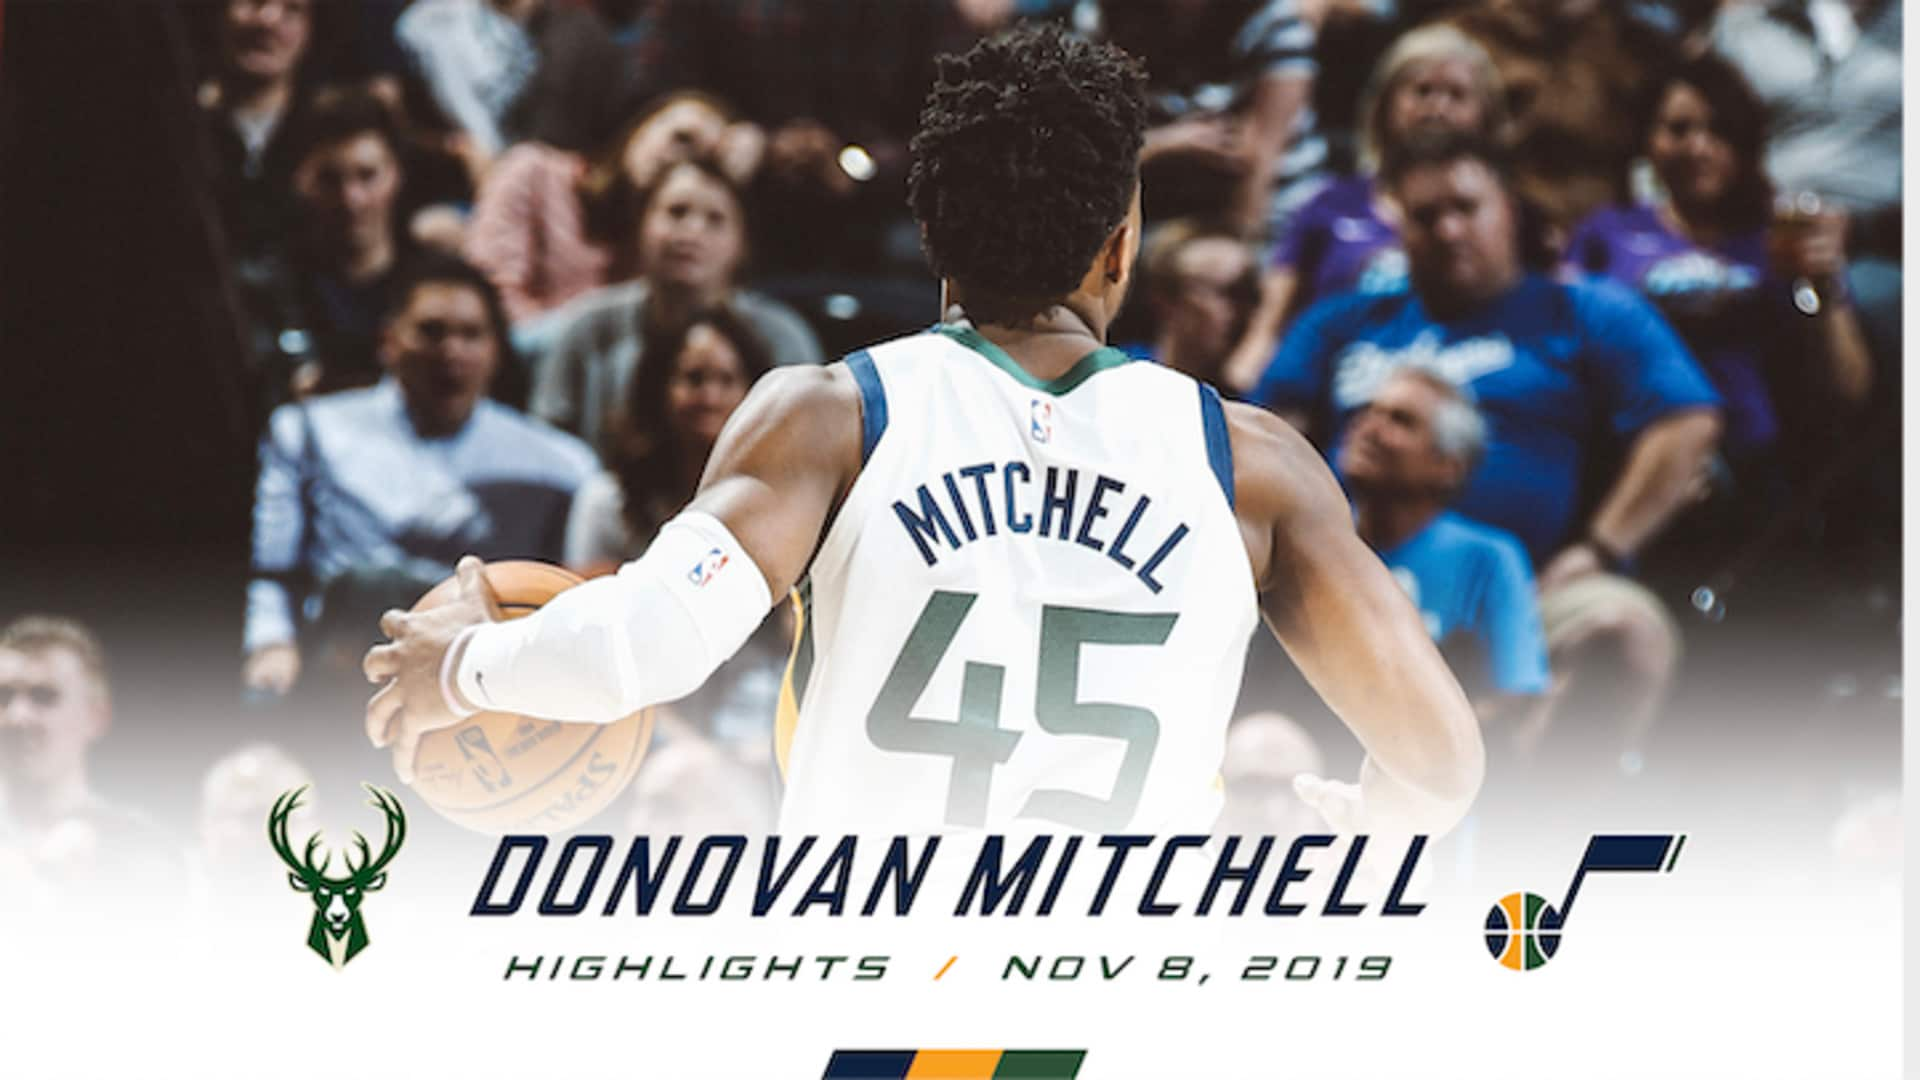 Highlights: Donovan Mitchell - 19 points, 6 assists